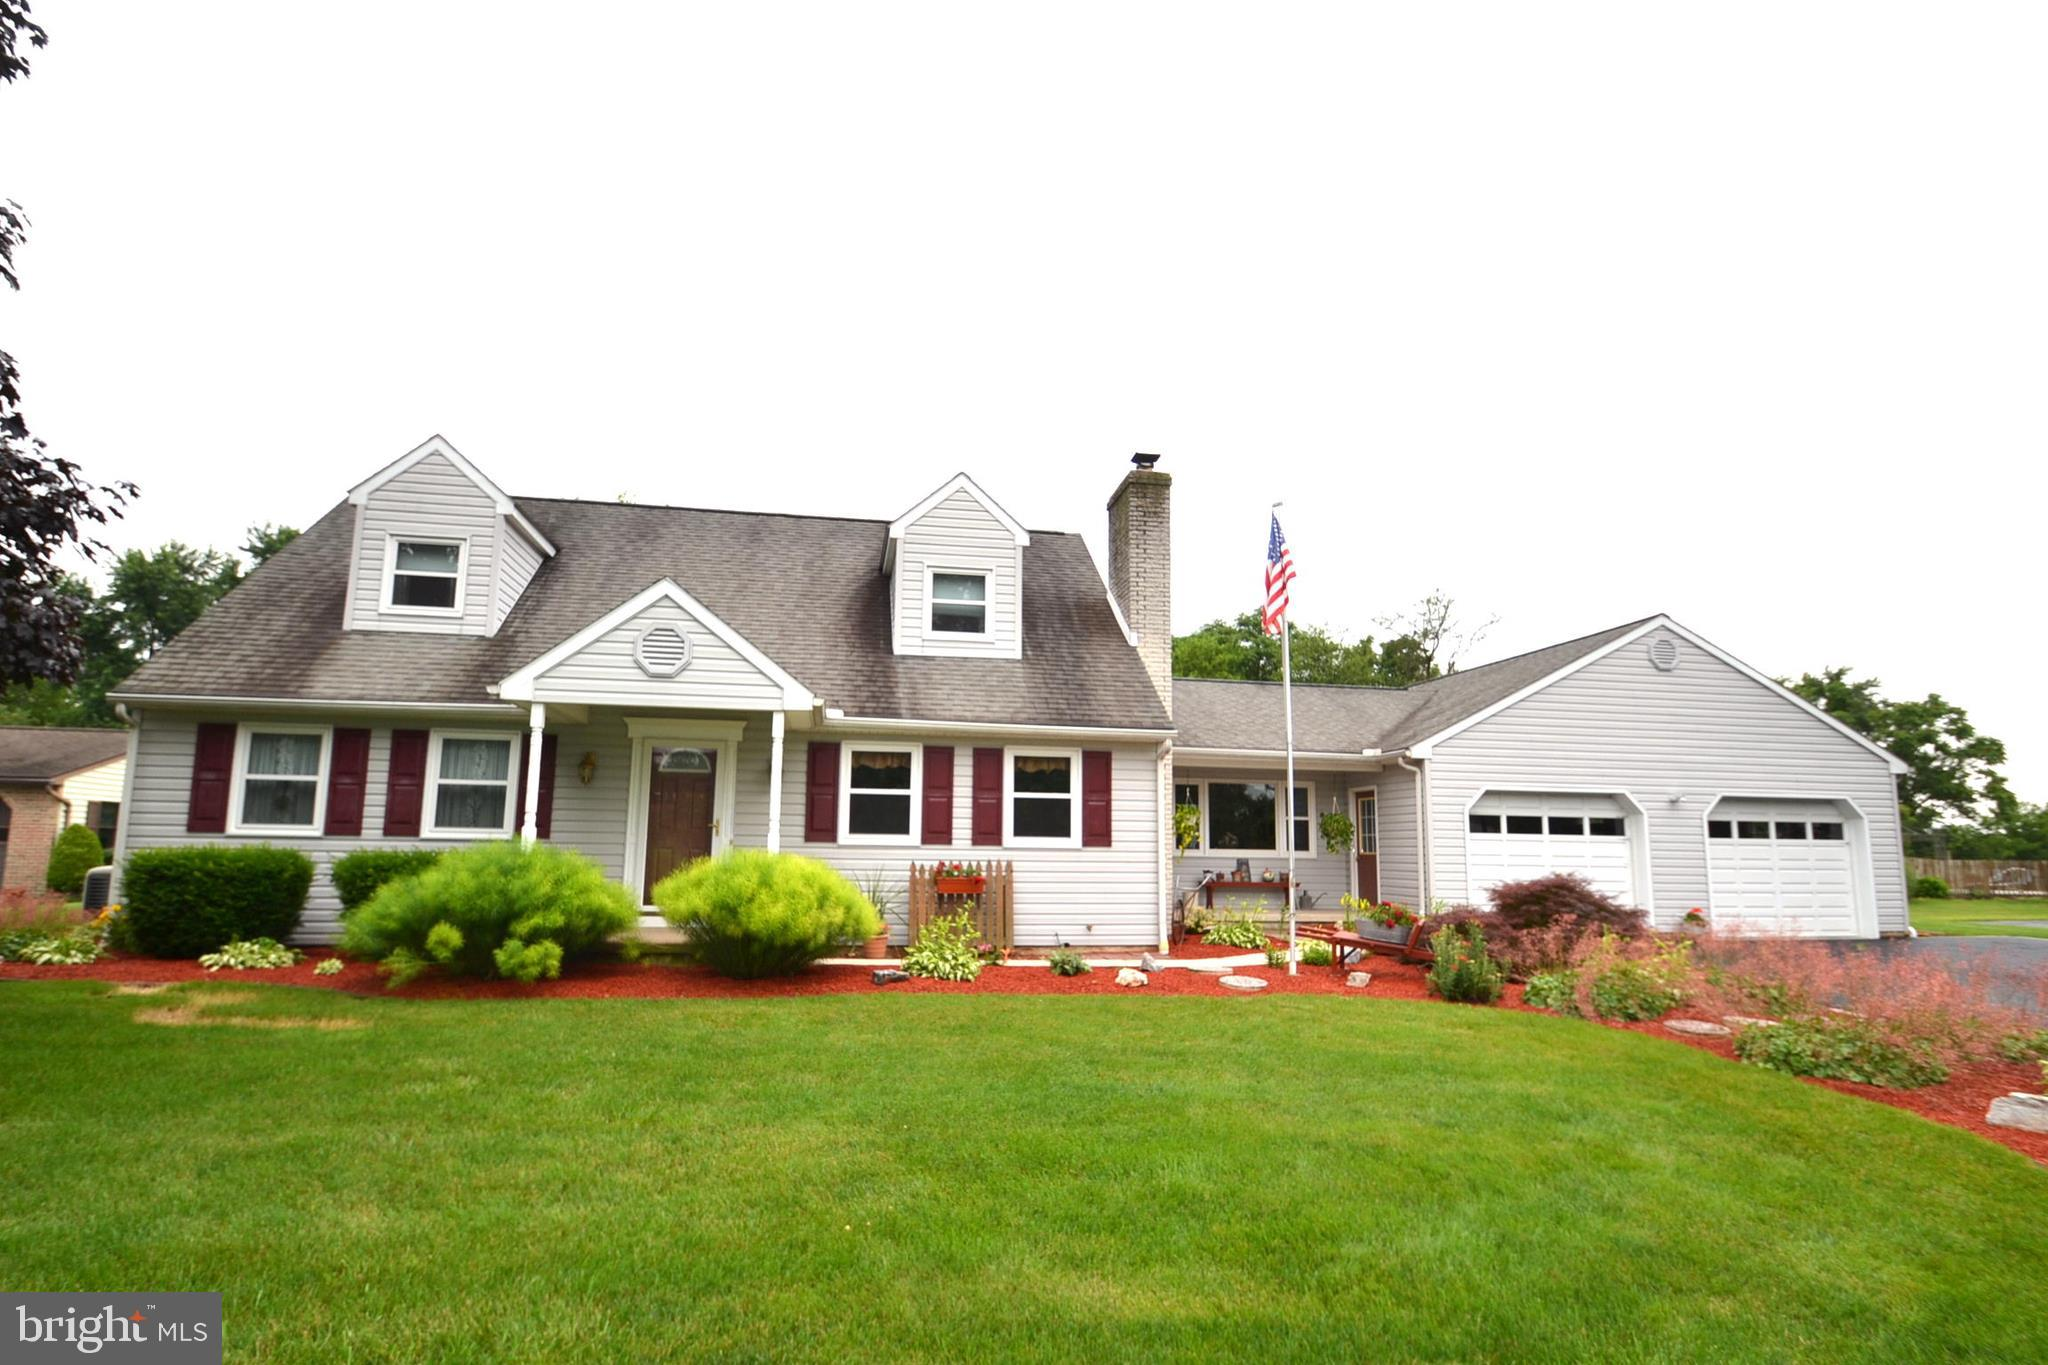 600 NEWBERRY ROAD, MIDDLETOWN, PA 17057